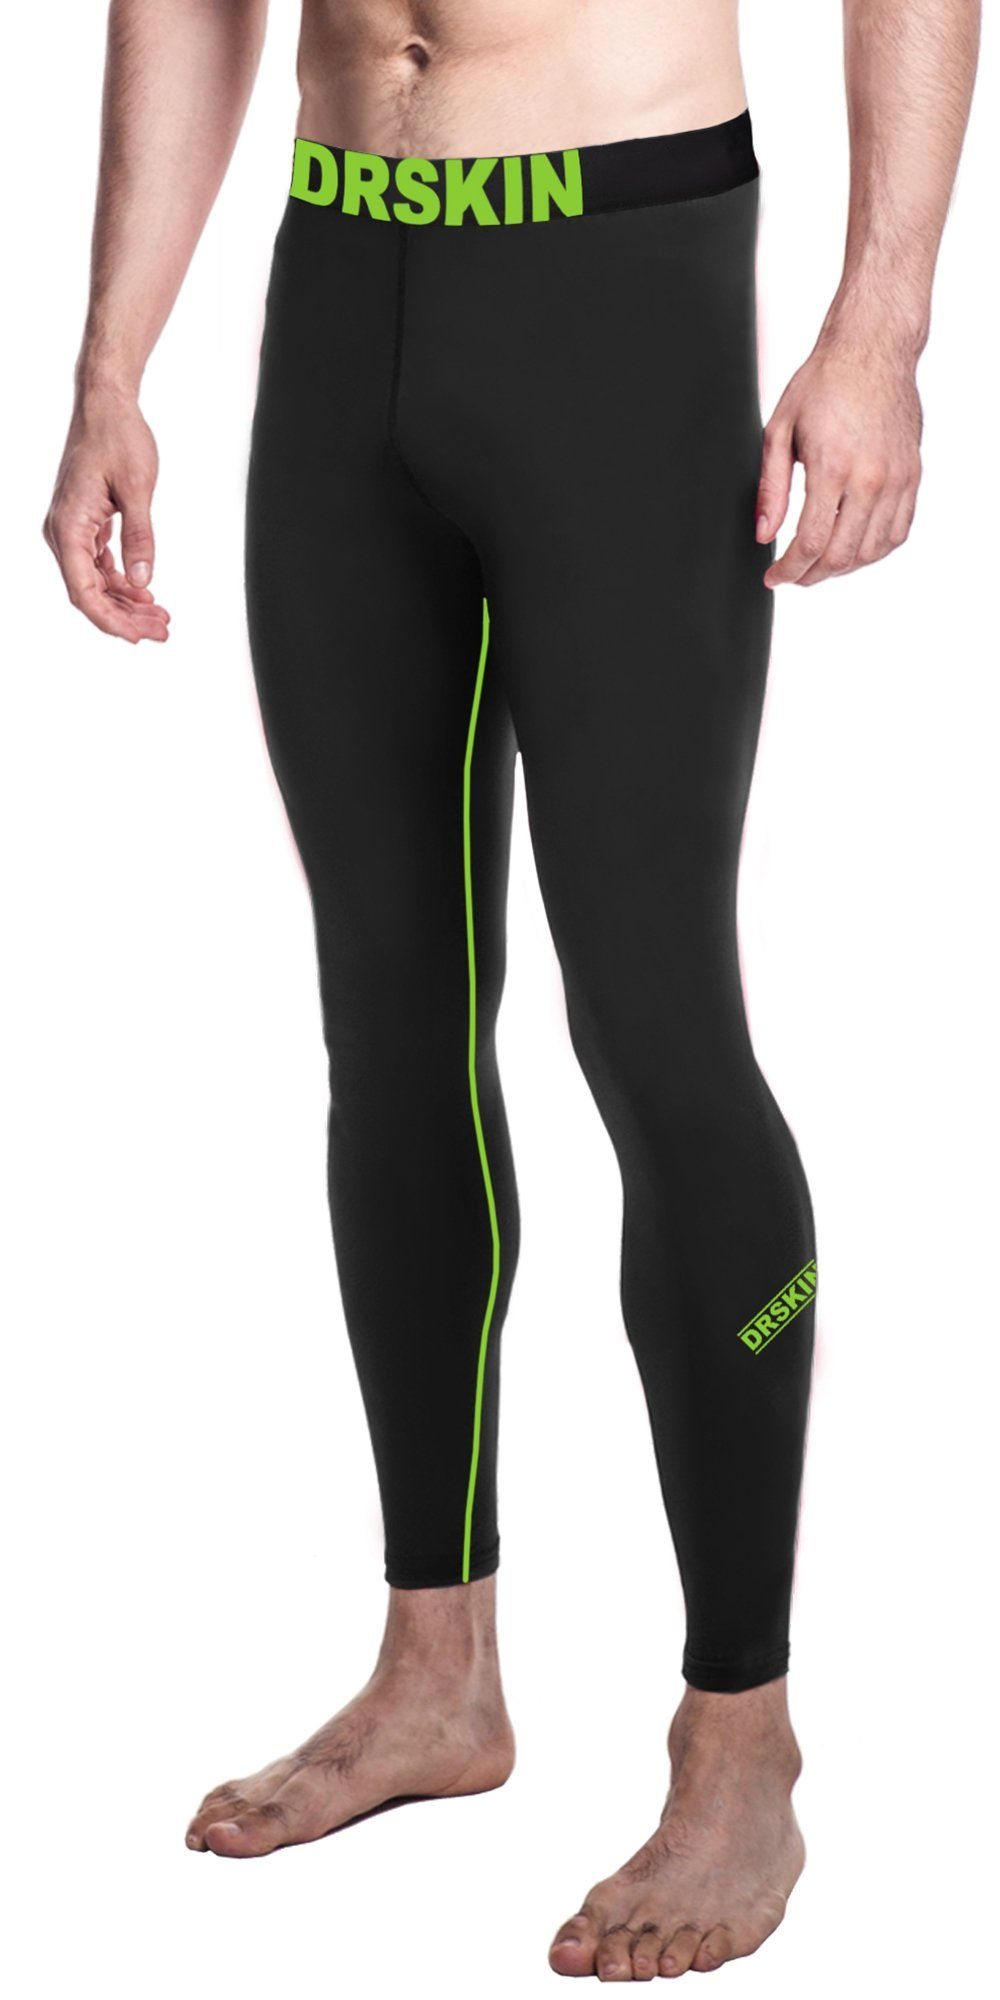 6610cdc10c65fe DRSKIN Compression Cool Dry Sports Tights Pants Baselayer Running Leggings  Yoga Rashguard Men (Simple LG